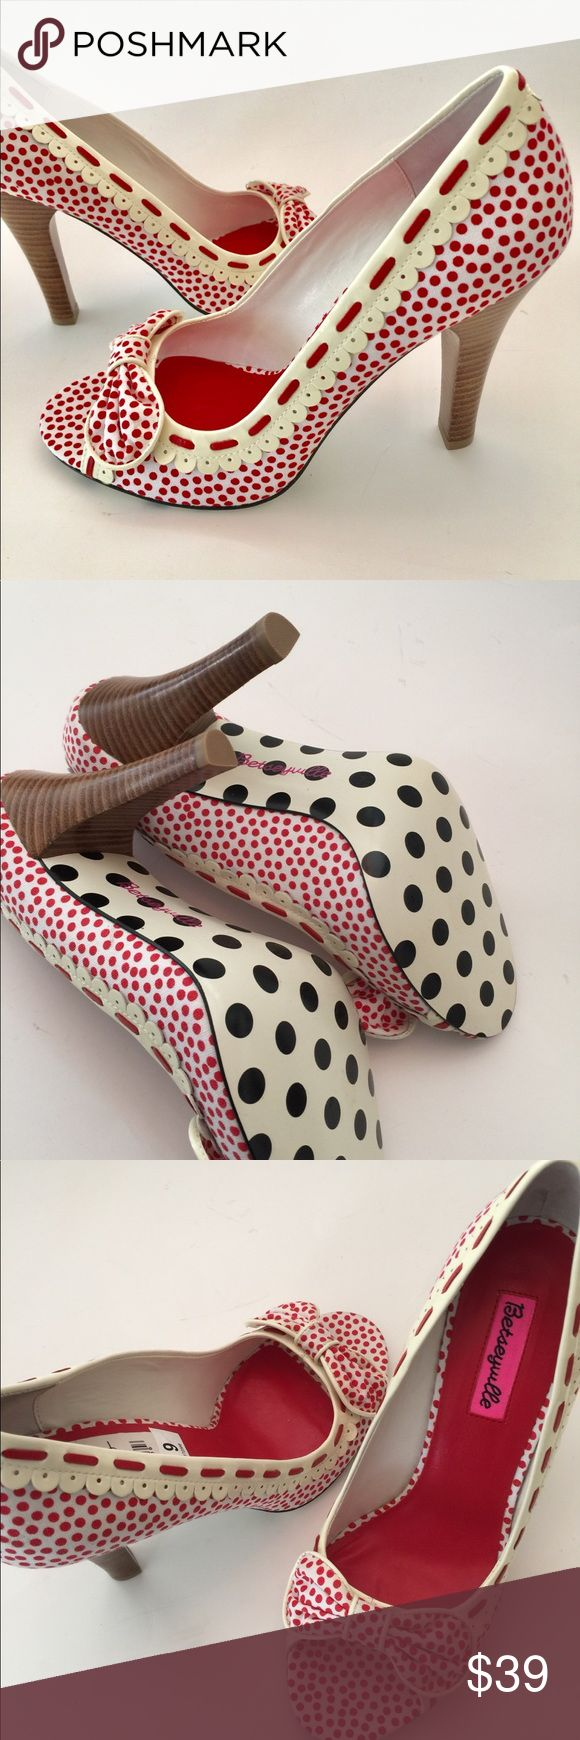 """Betseyville Open Toe 4"""" High Heel Shoes, Sz 9 NWT Betseyville Red Polka Dots on White  Open Peep Toe, Stacked High Heels  Maker: Betseyville by Betsey Johnson  Style Name/Number: Valyn  Material: Fabric  Size: 9  Toe to heel Approx 9.5"""" heel height = Approx 4""""  Retail $99 New with tag  Ships USPS Priority  Adorable shoes!! Thanks for looking! Betsey Johnson Shoes Heels"""